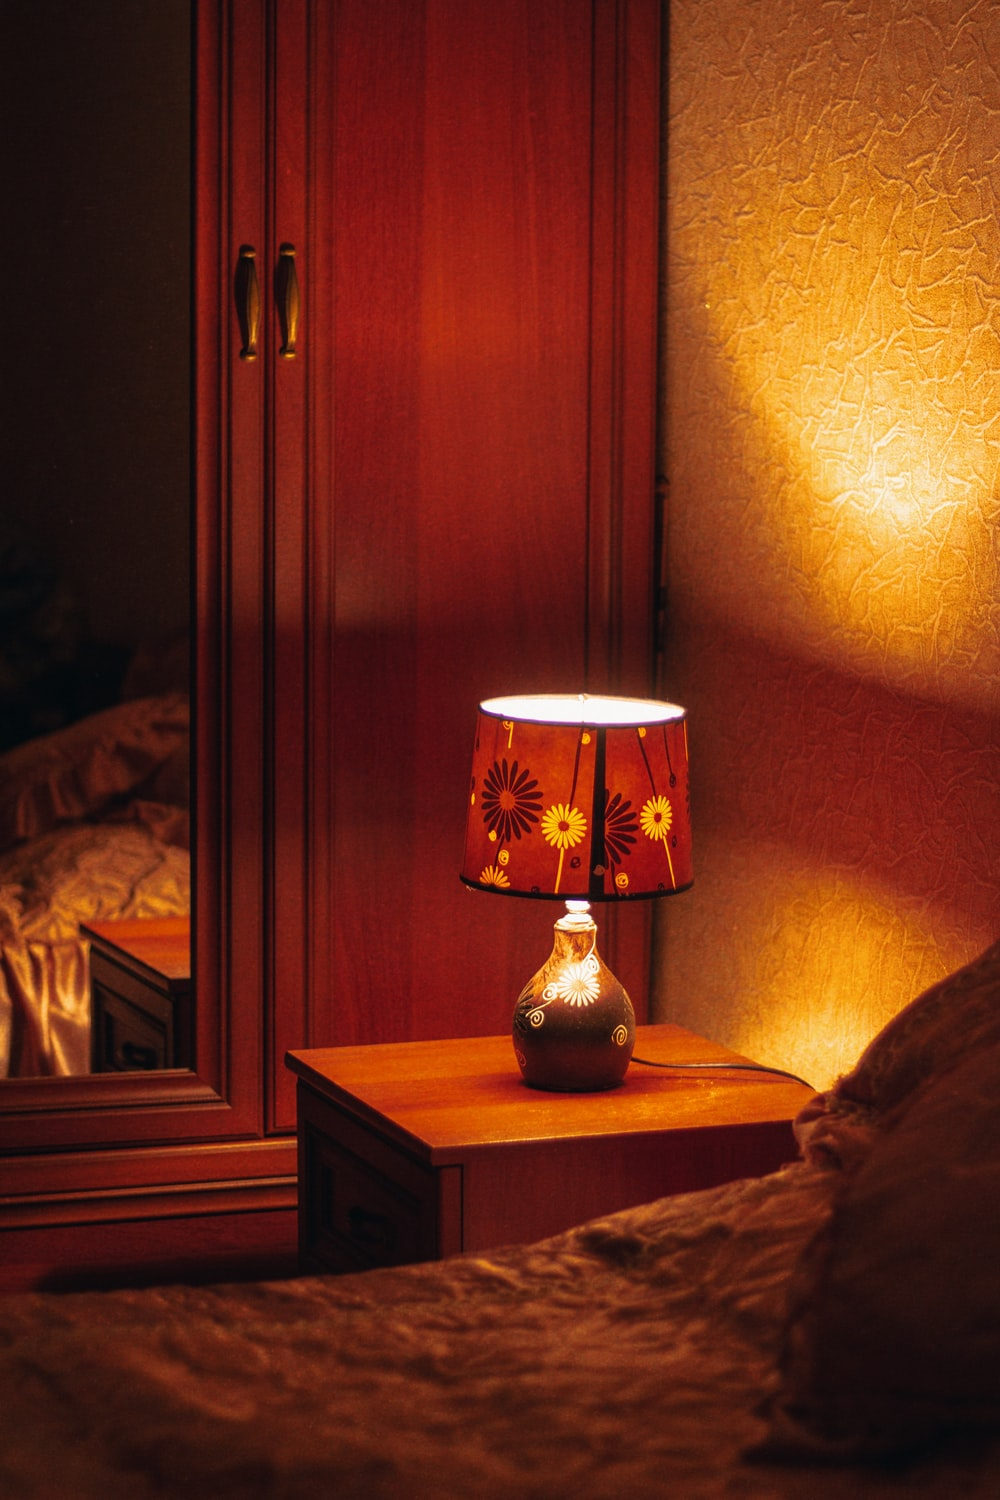 brown and white table lamp on brown wooden table